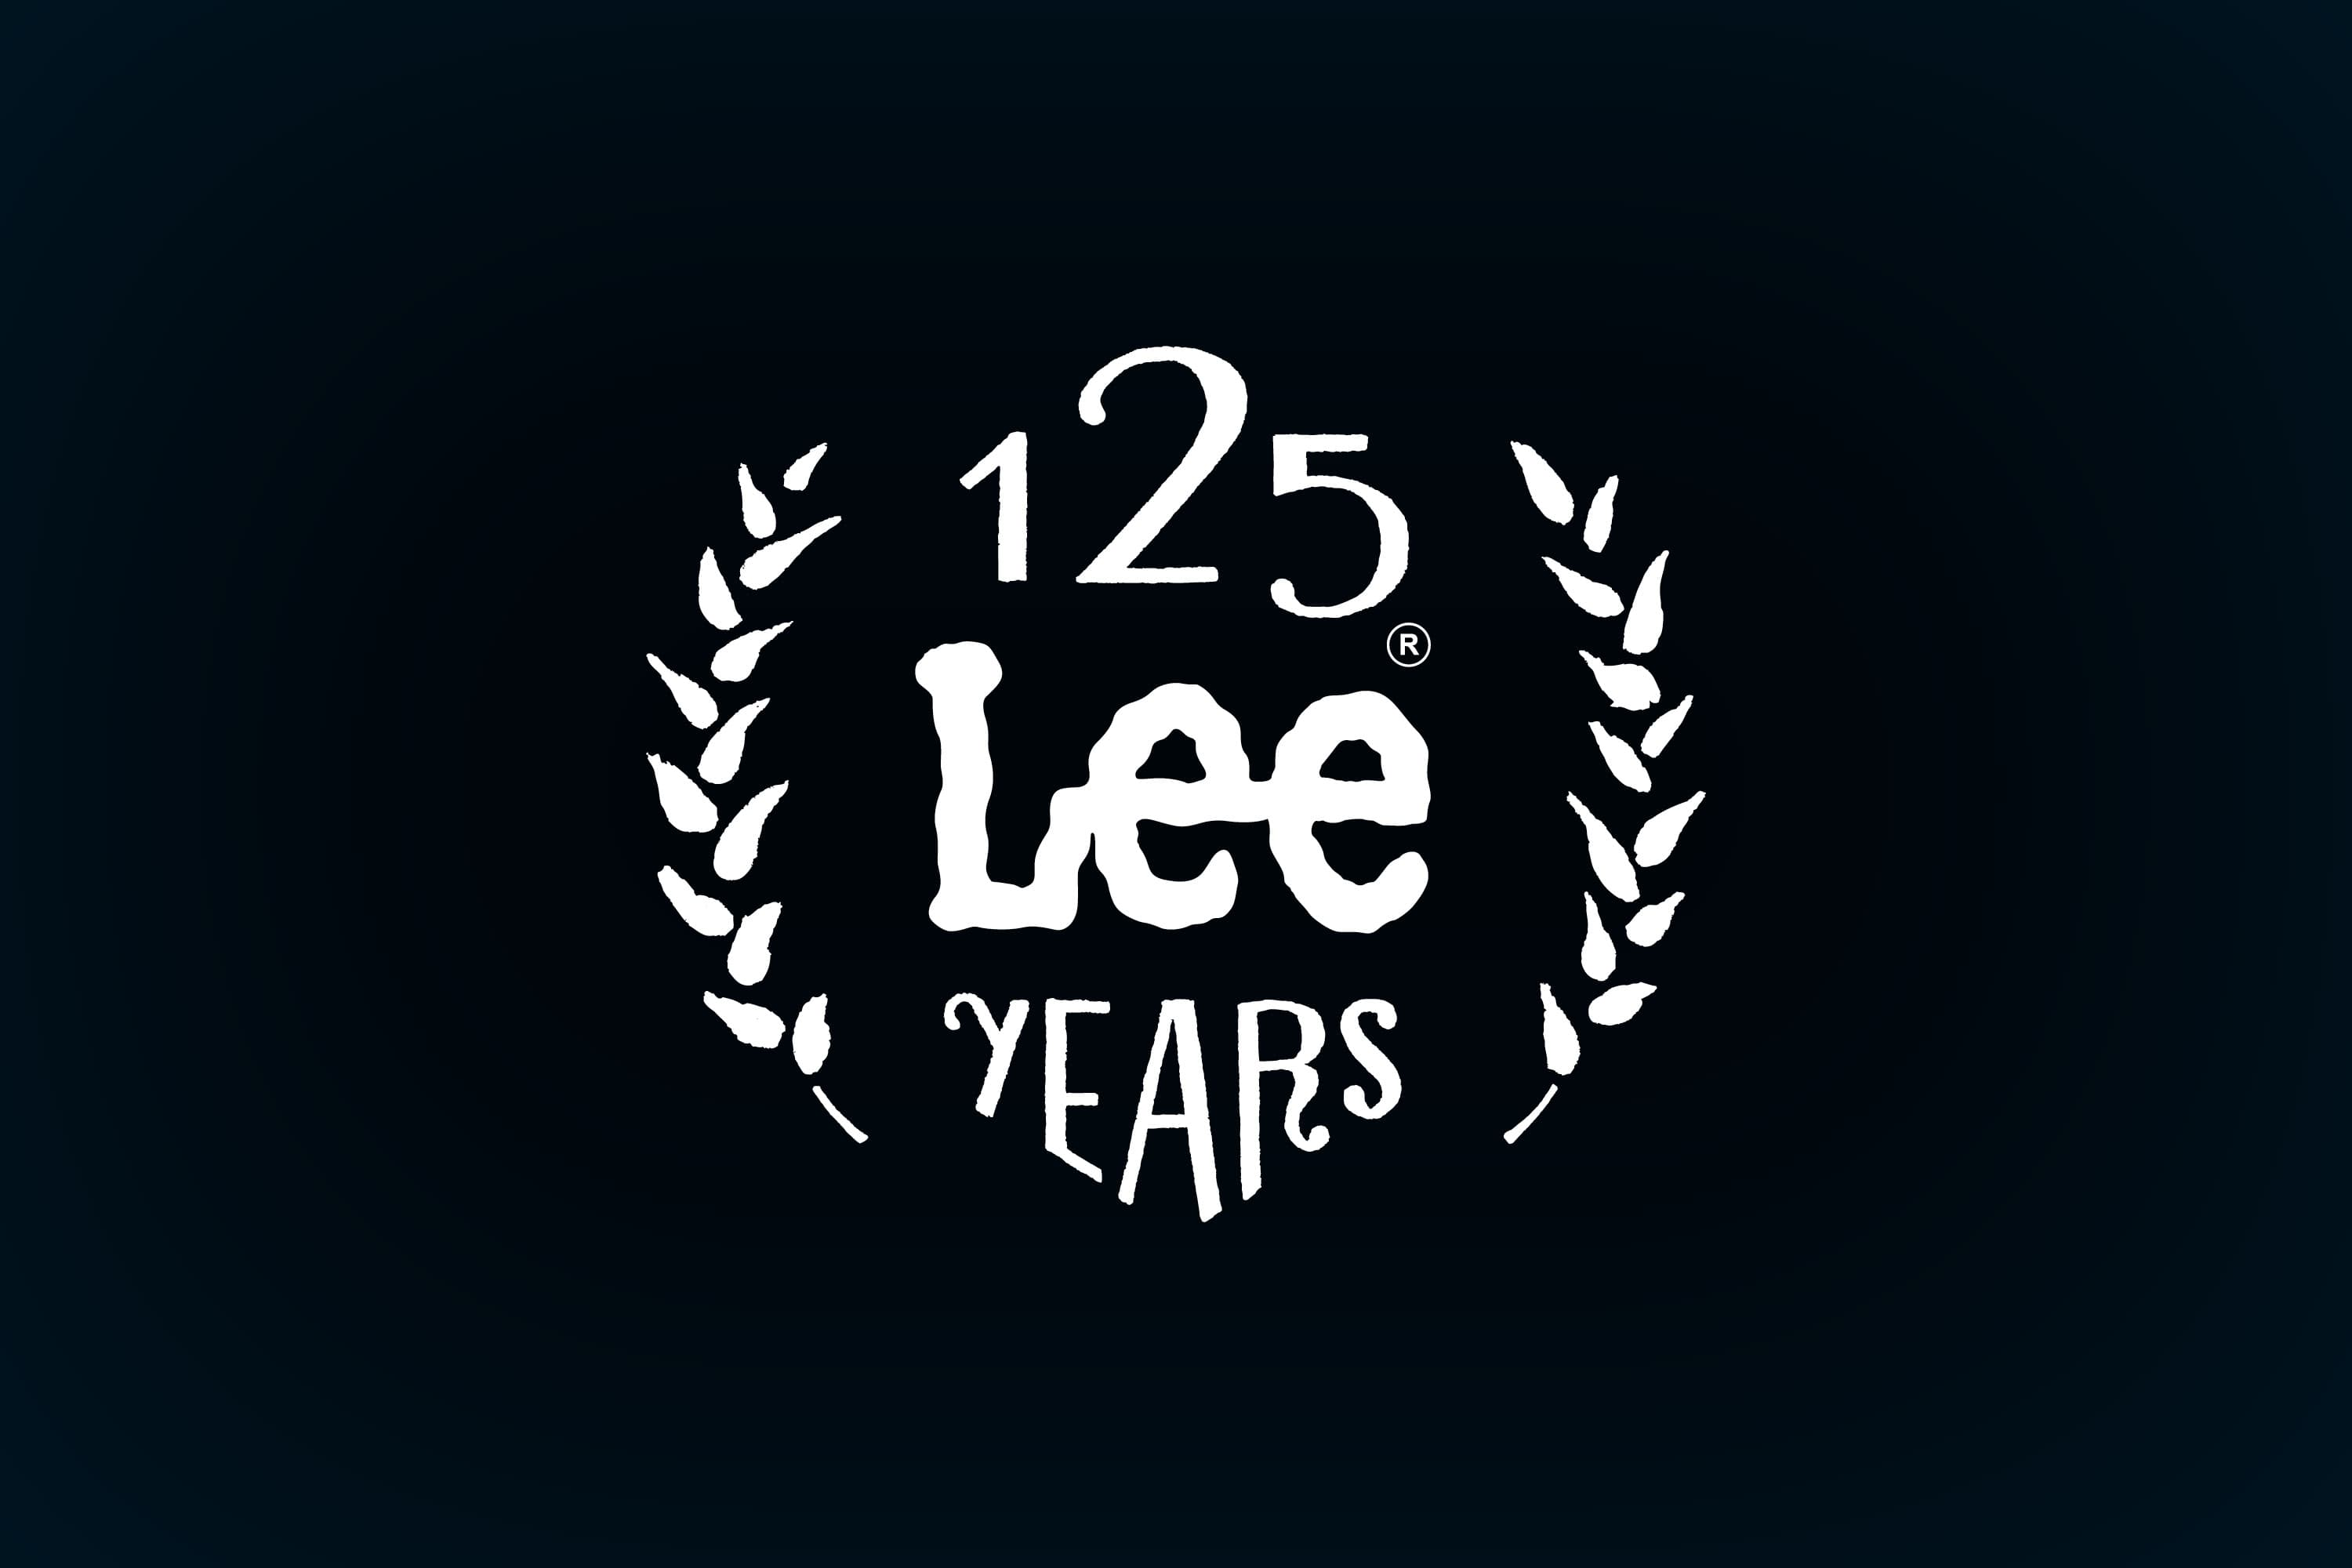 Lee® 125 years of denim